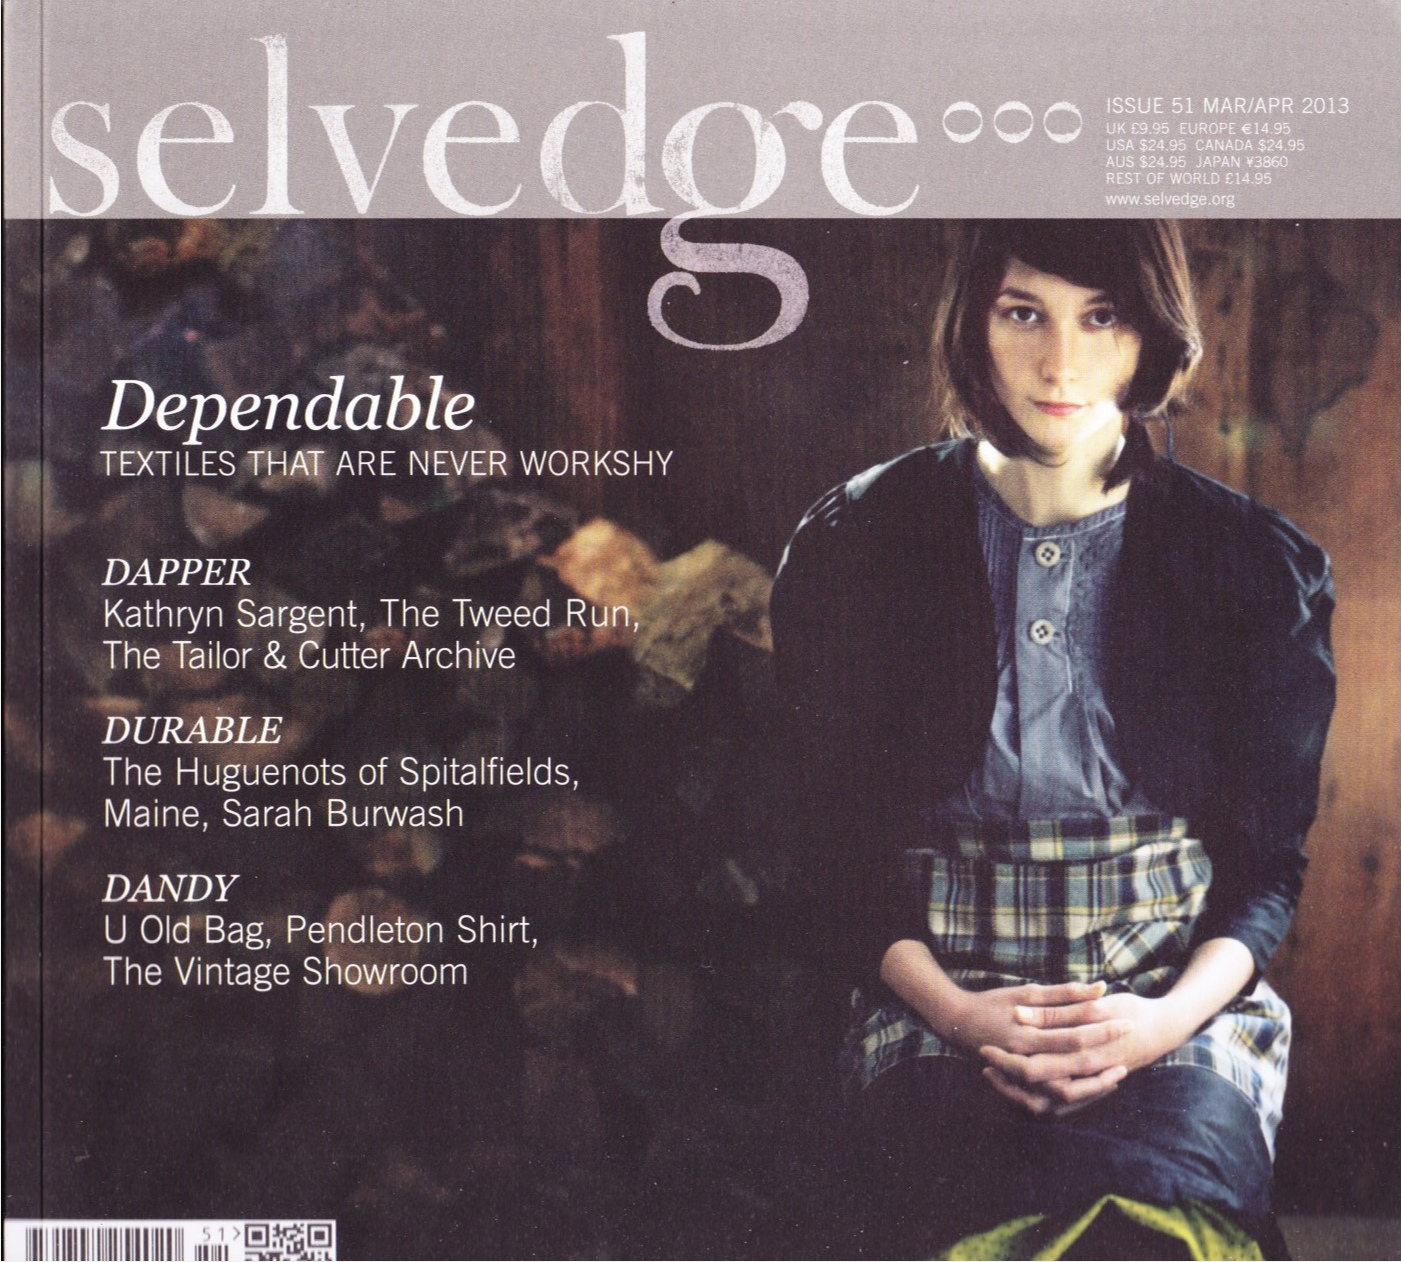 Image for Selvedge Magazine, MAR/APR 2013, Issue 51 The Dependable Issue